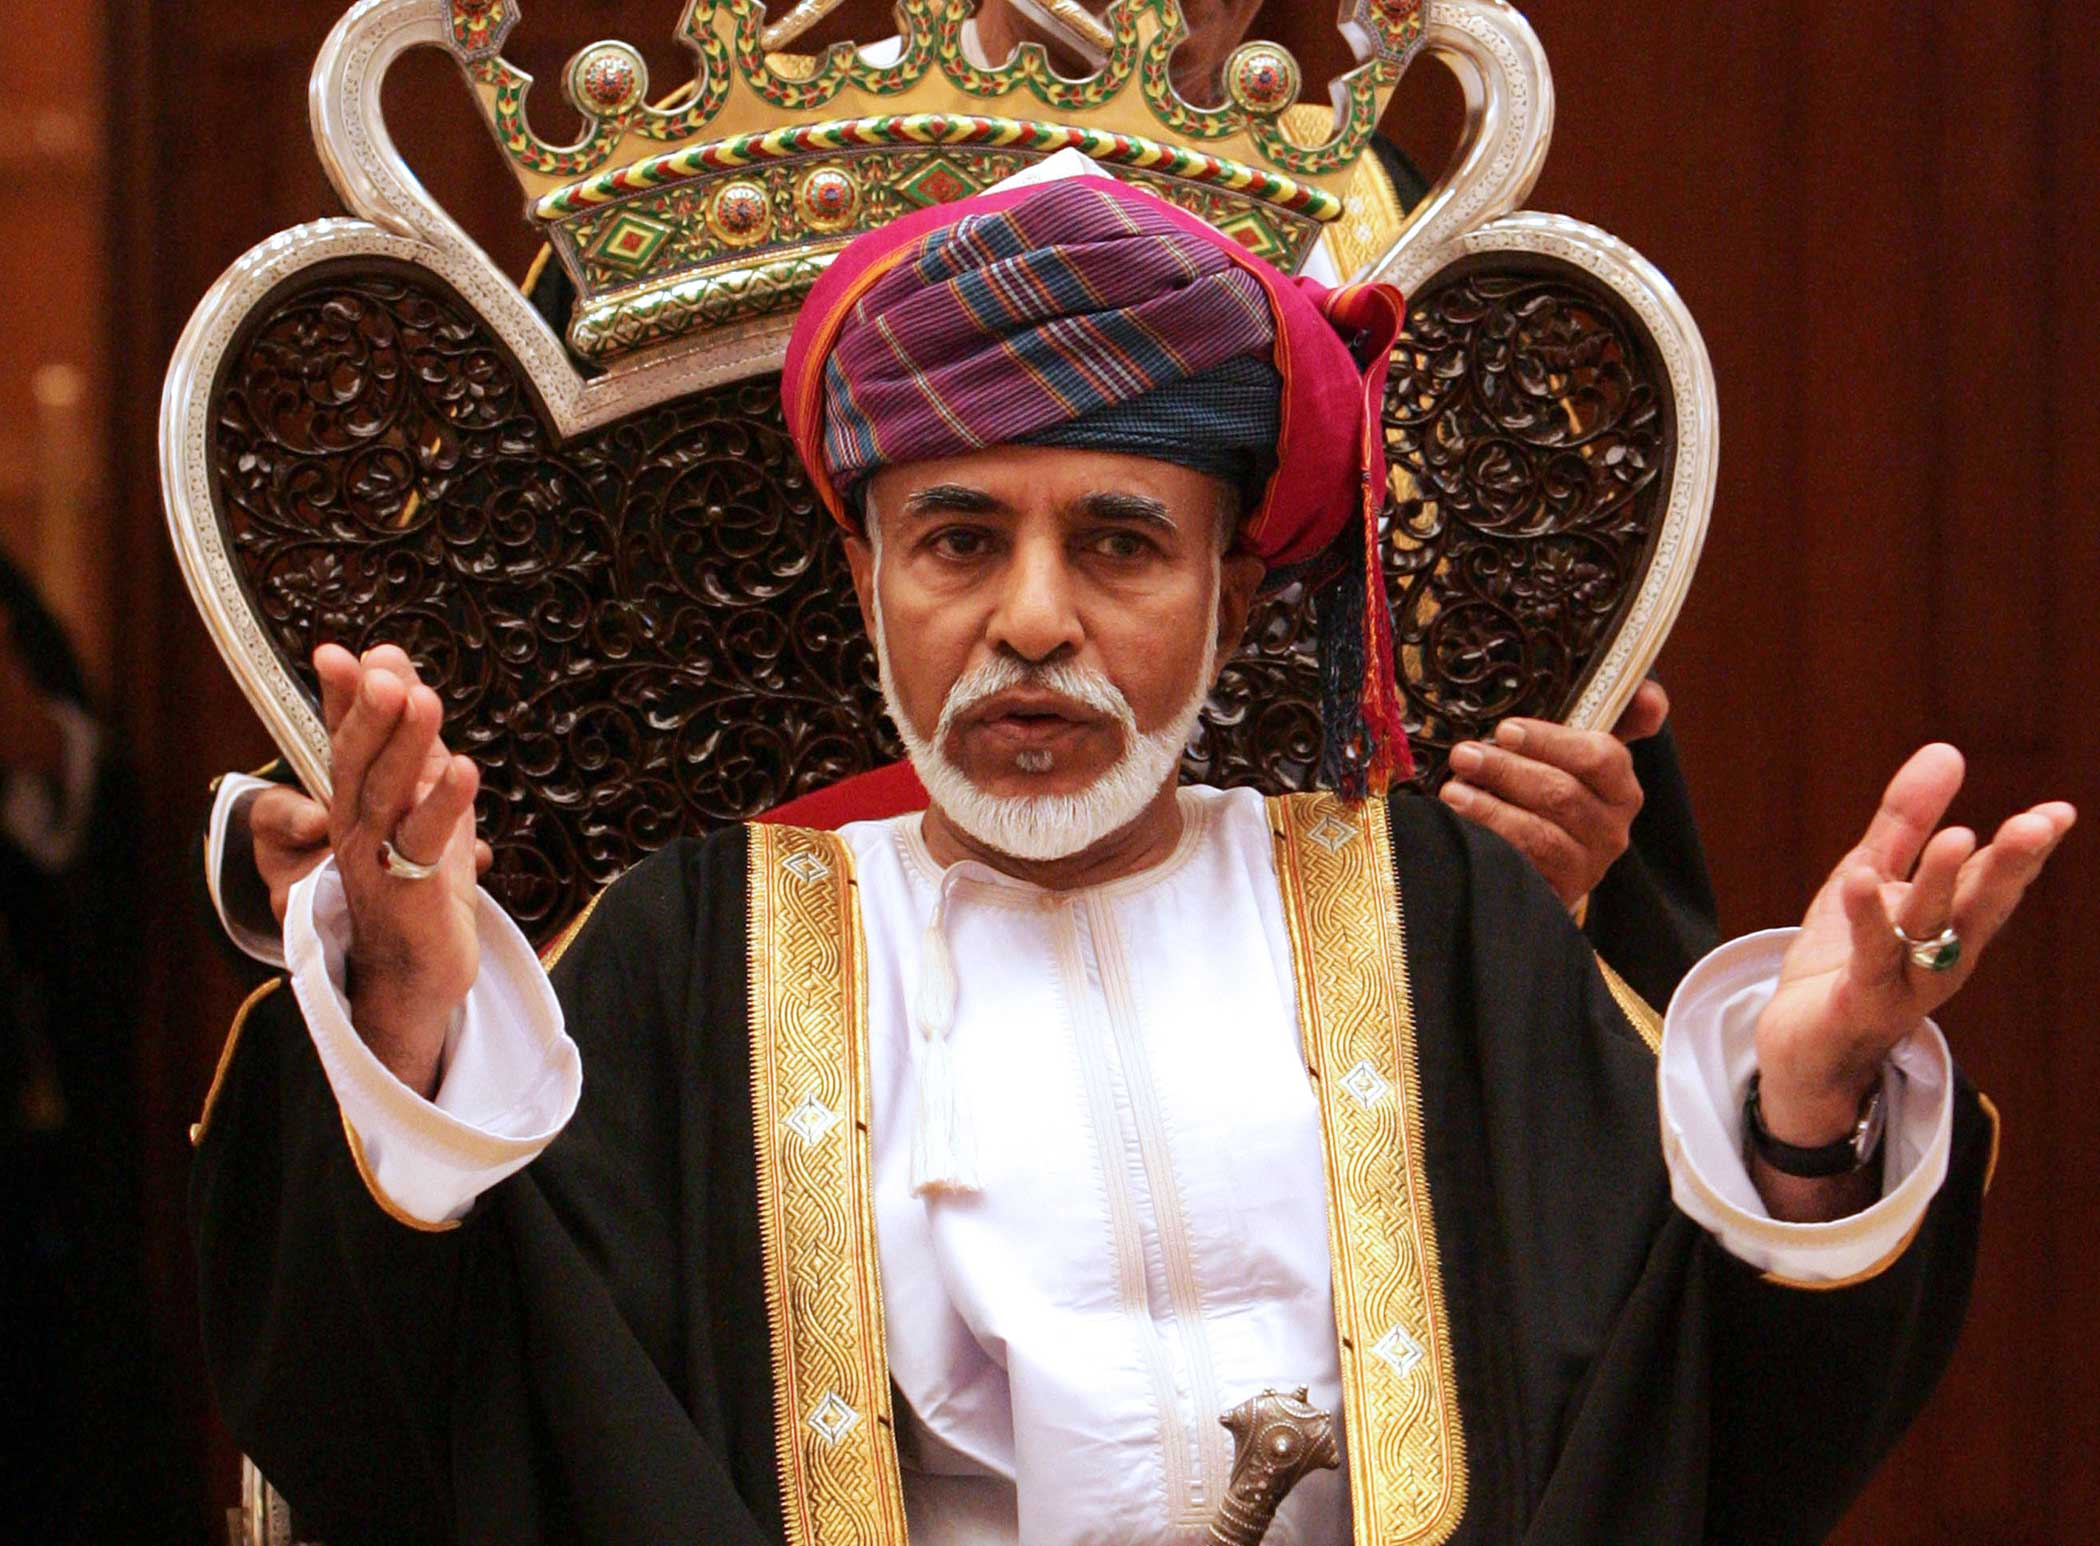 Omani Leader Sultan Qaboos bin Said addresses the opening session of the Council of Oman in Muscat on Oct. 31, 2011.